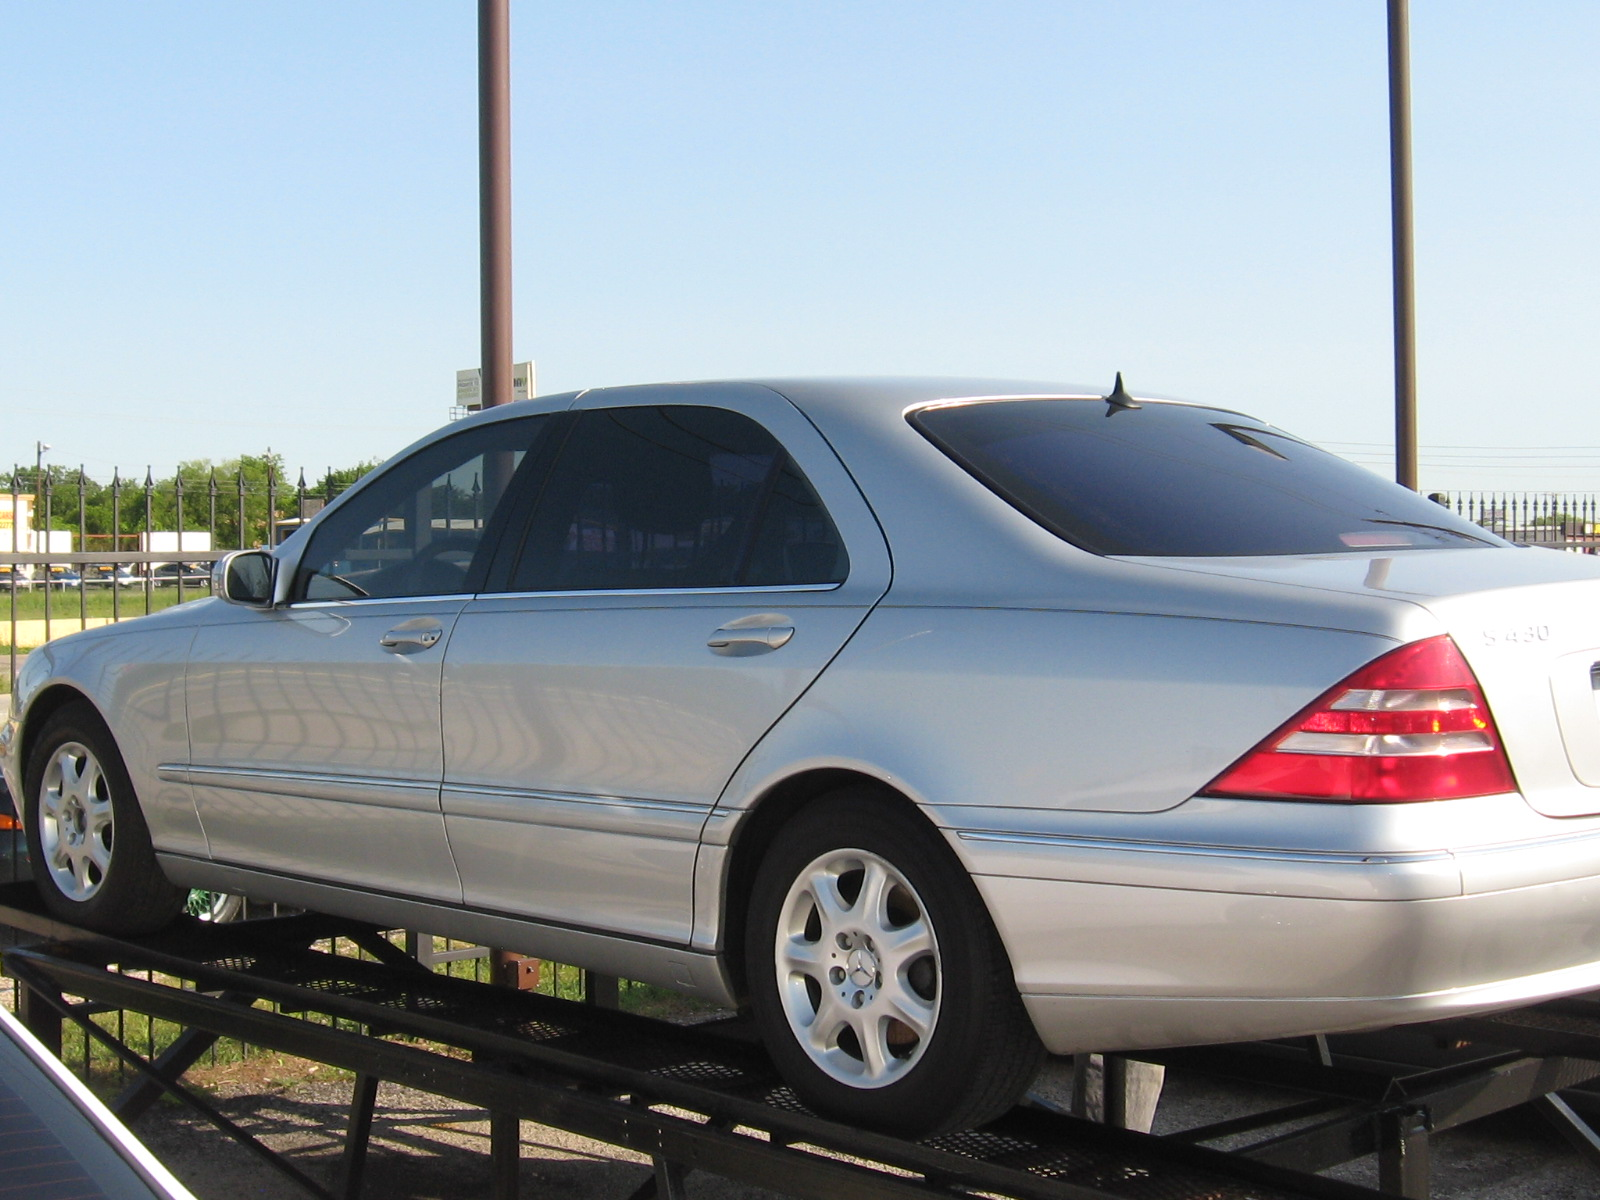 2002 mercedes benz s 430 welcome to autoworldtx for Mercedes benz s 430